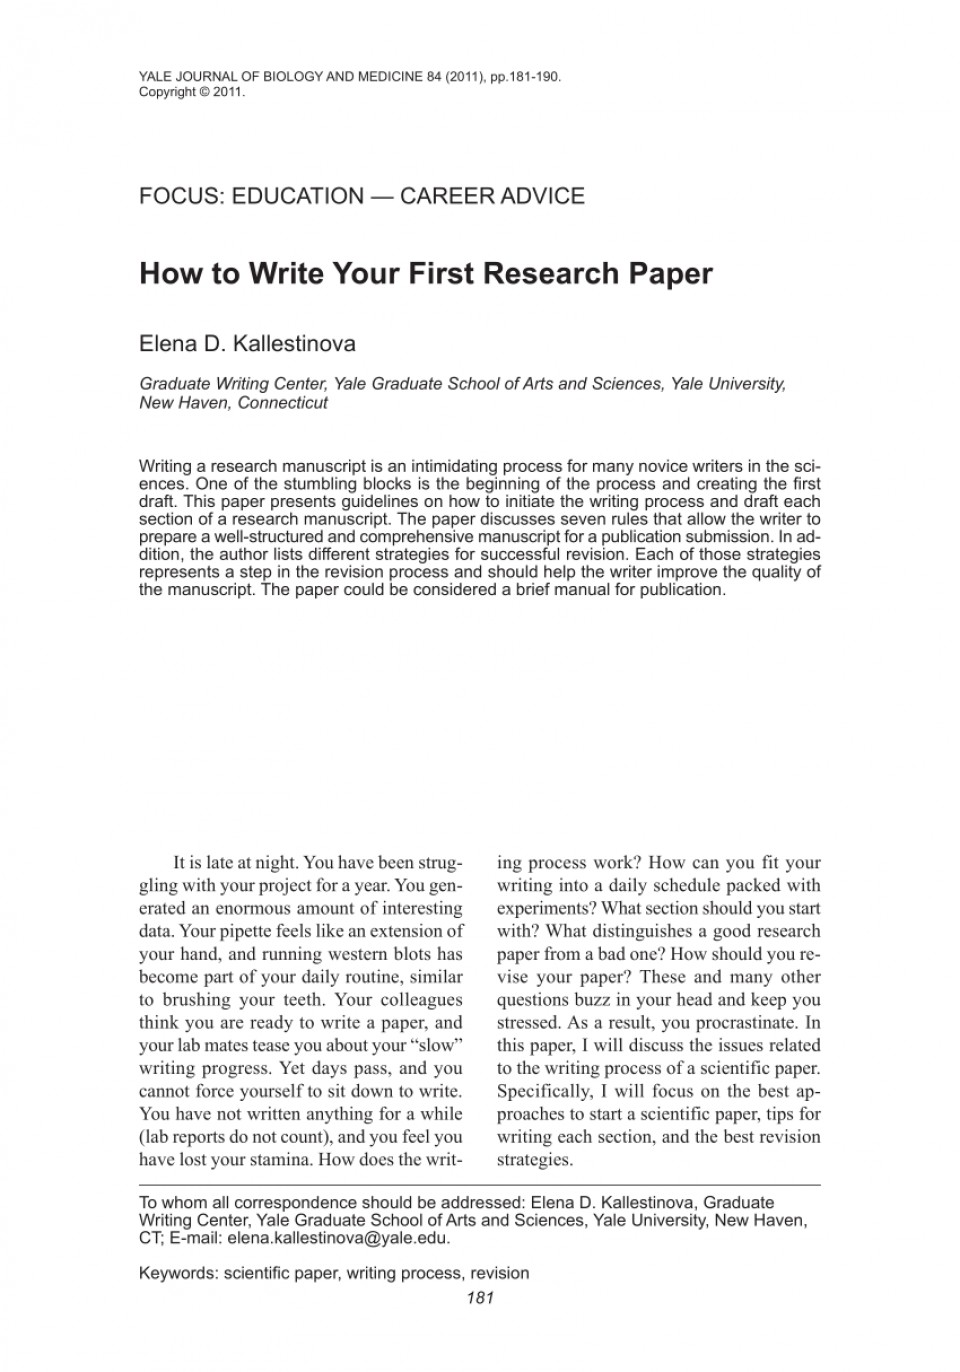 017 Largepreview Research Paper Biology Impressive Outline How To Write A 960